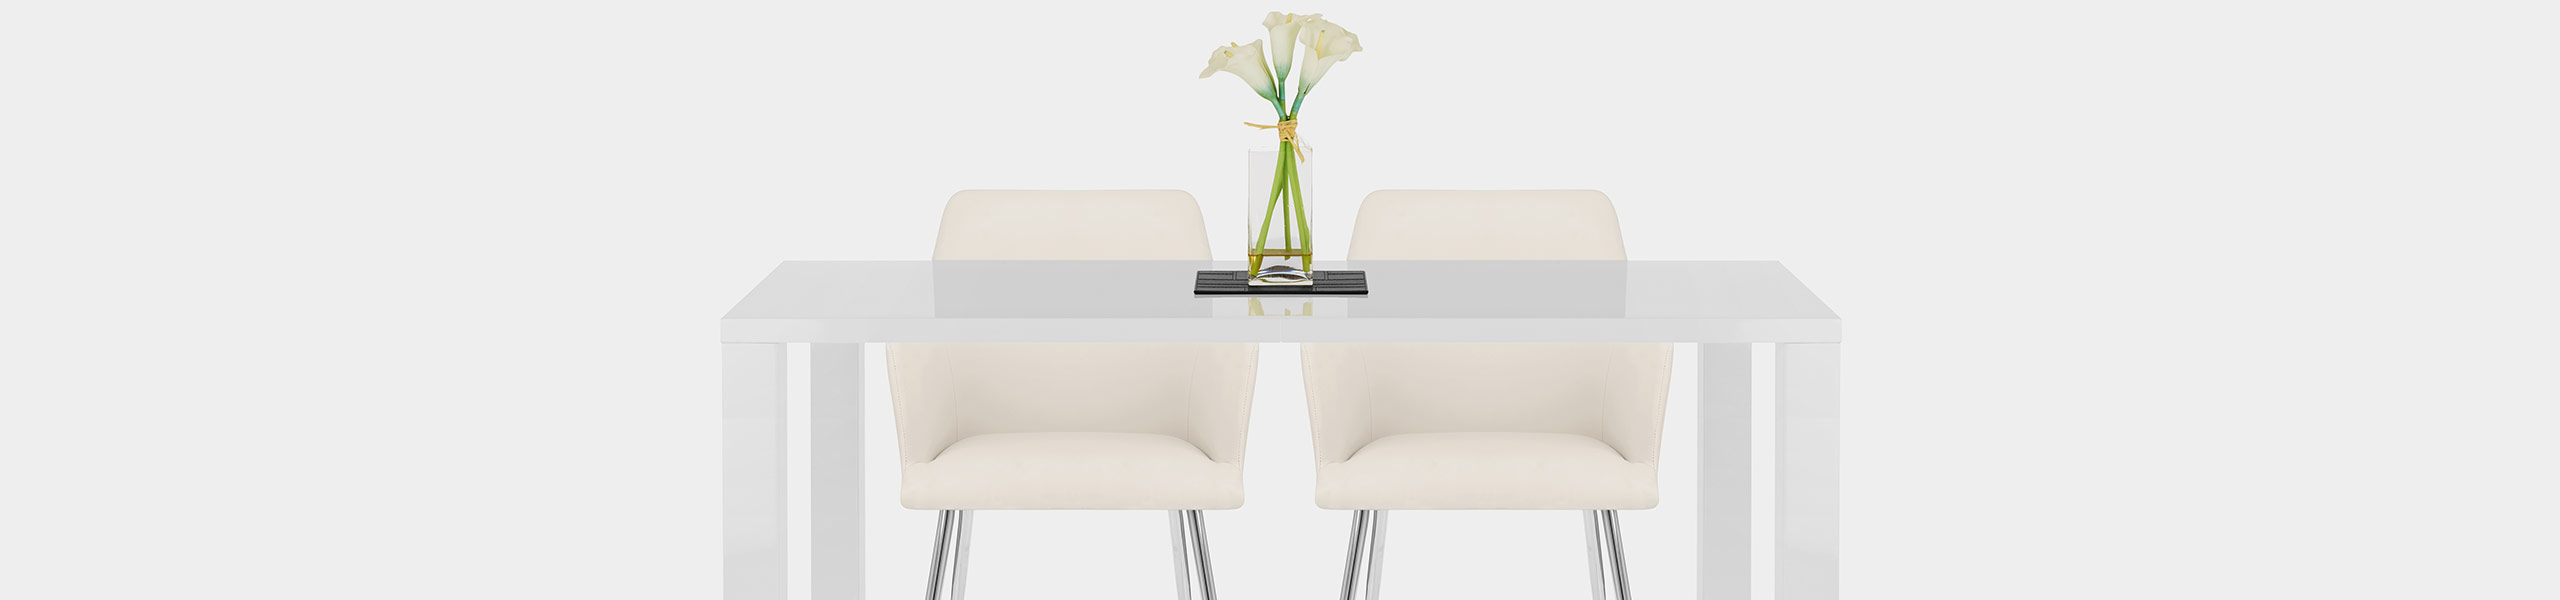 Donovan Dining Chair Cream Video Banner